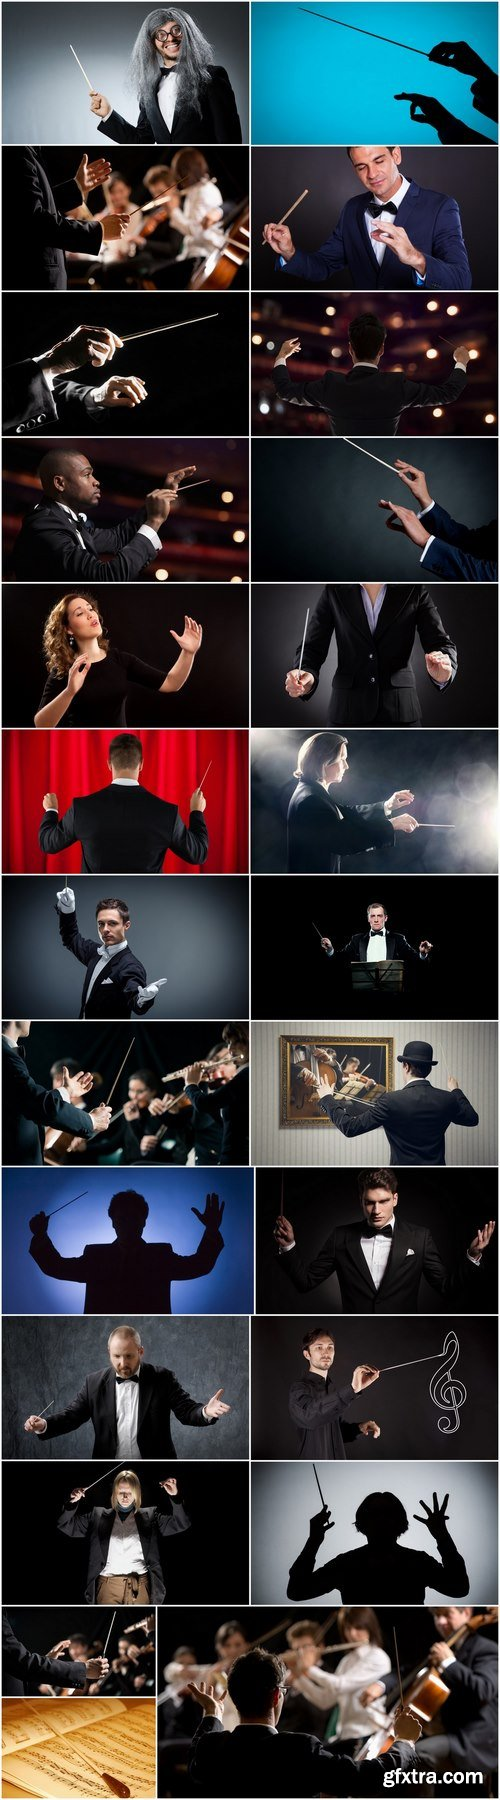 Conductor symphonic orchestra of opera house theater of 25 HQ Jpeg